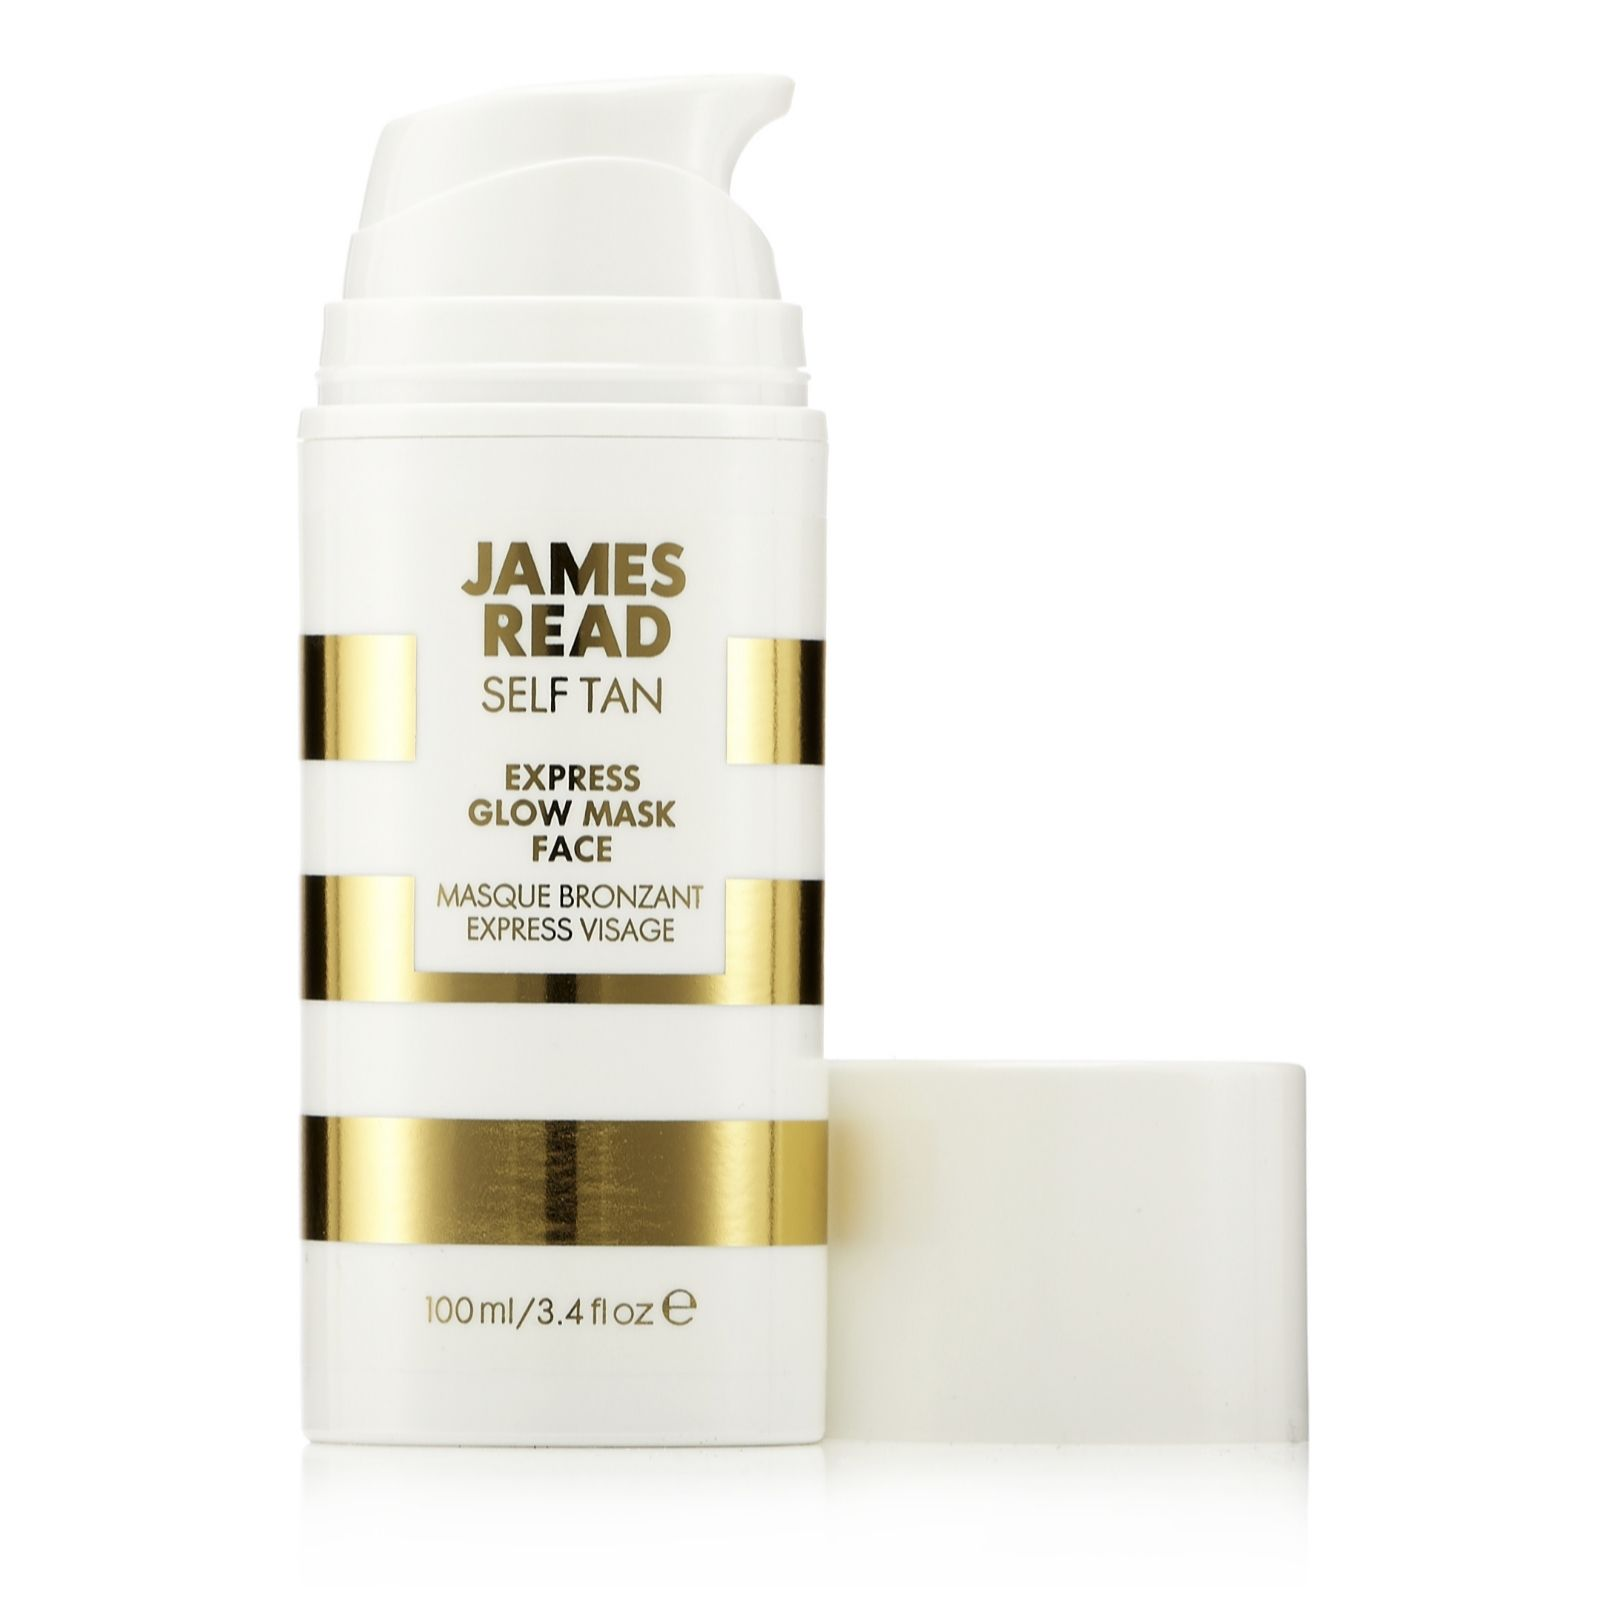 f2a1893961a5 James Read Supersize Express Mask Glow Face 100ml - Page 1 - QVC UK